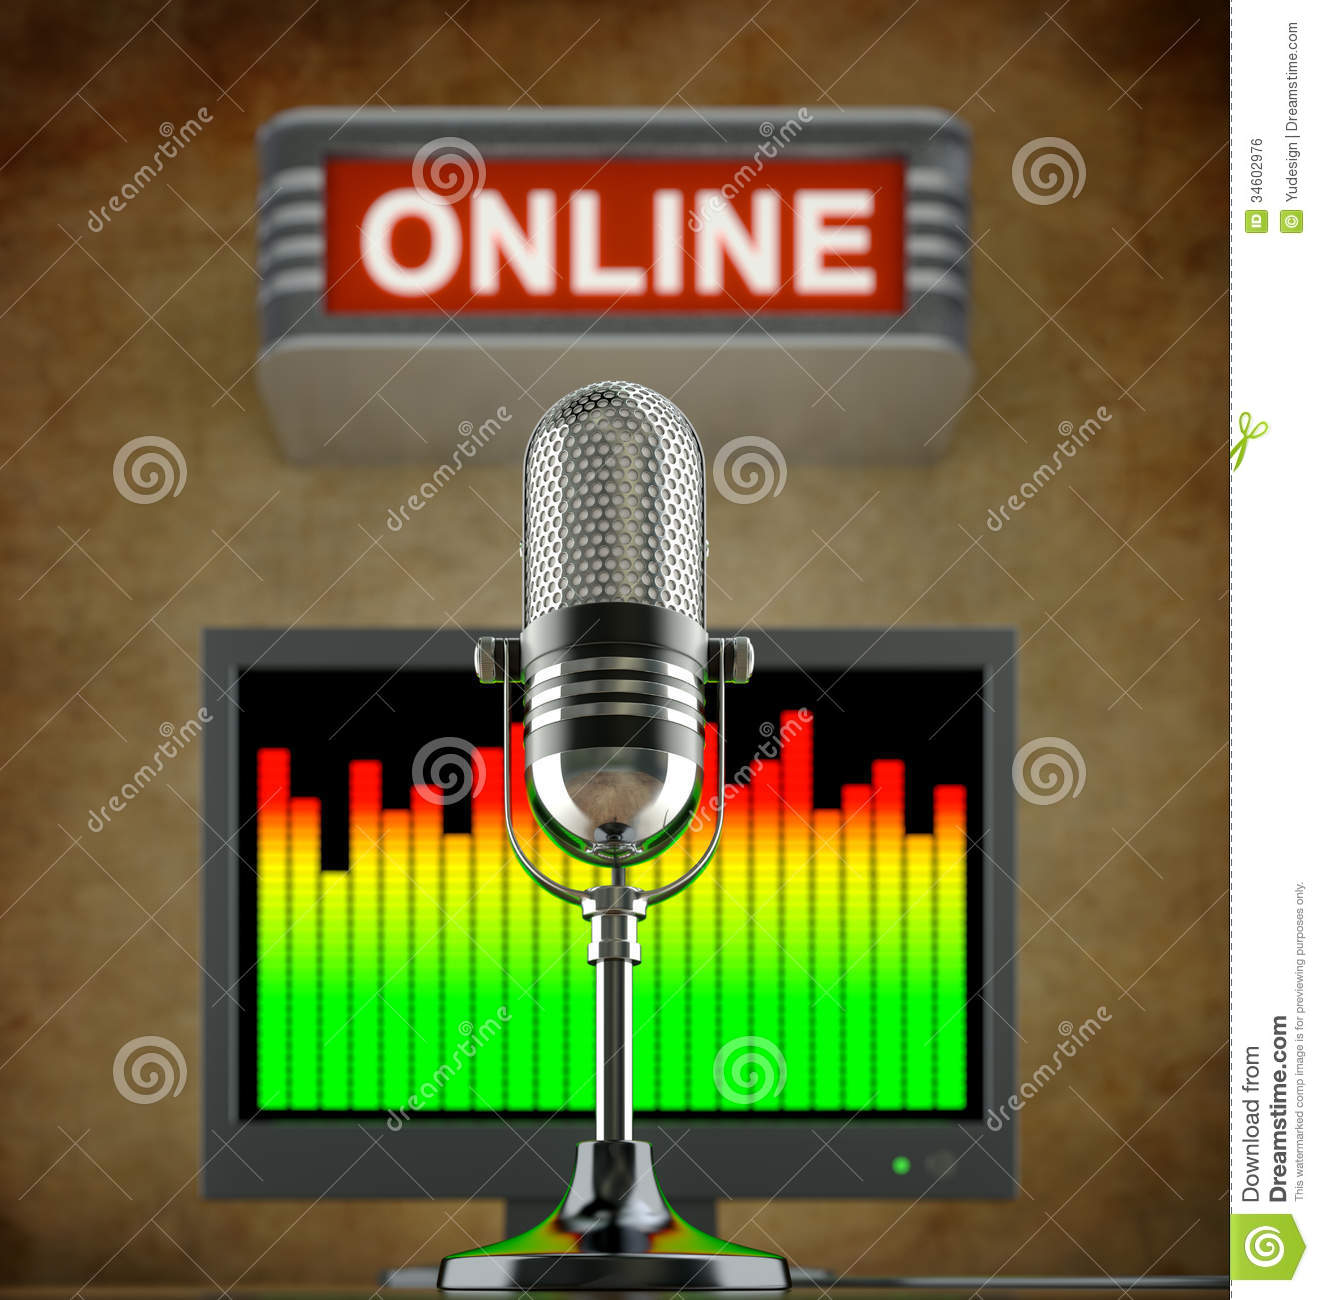 internet radio concept royalty free stock image